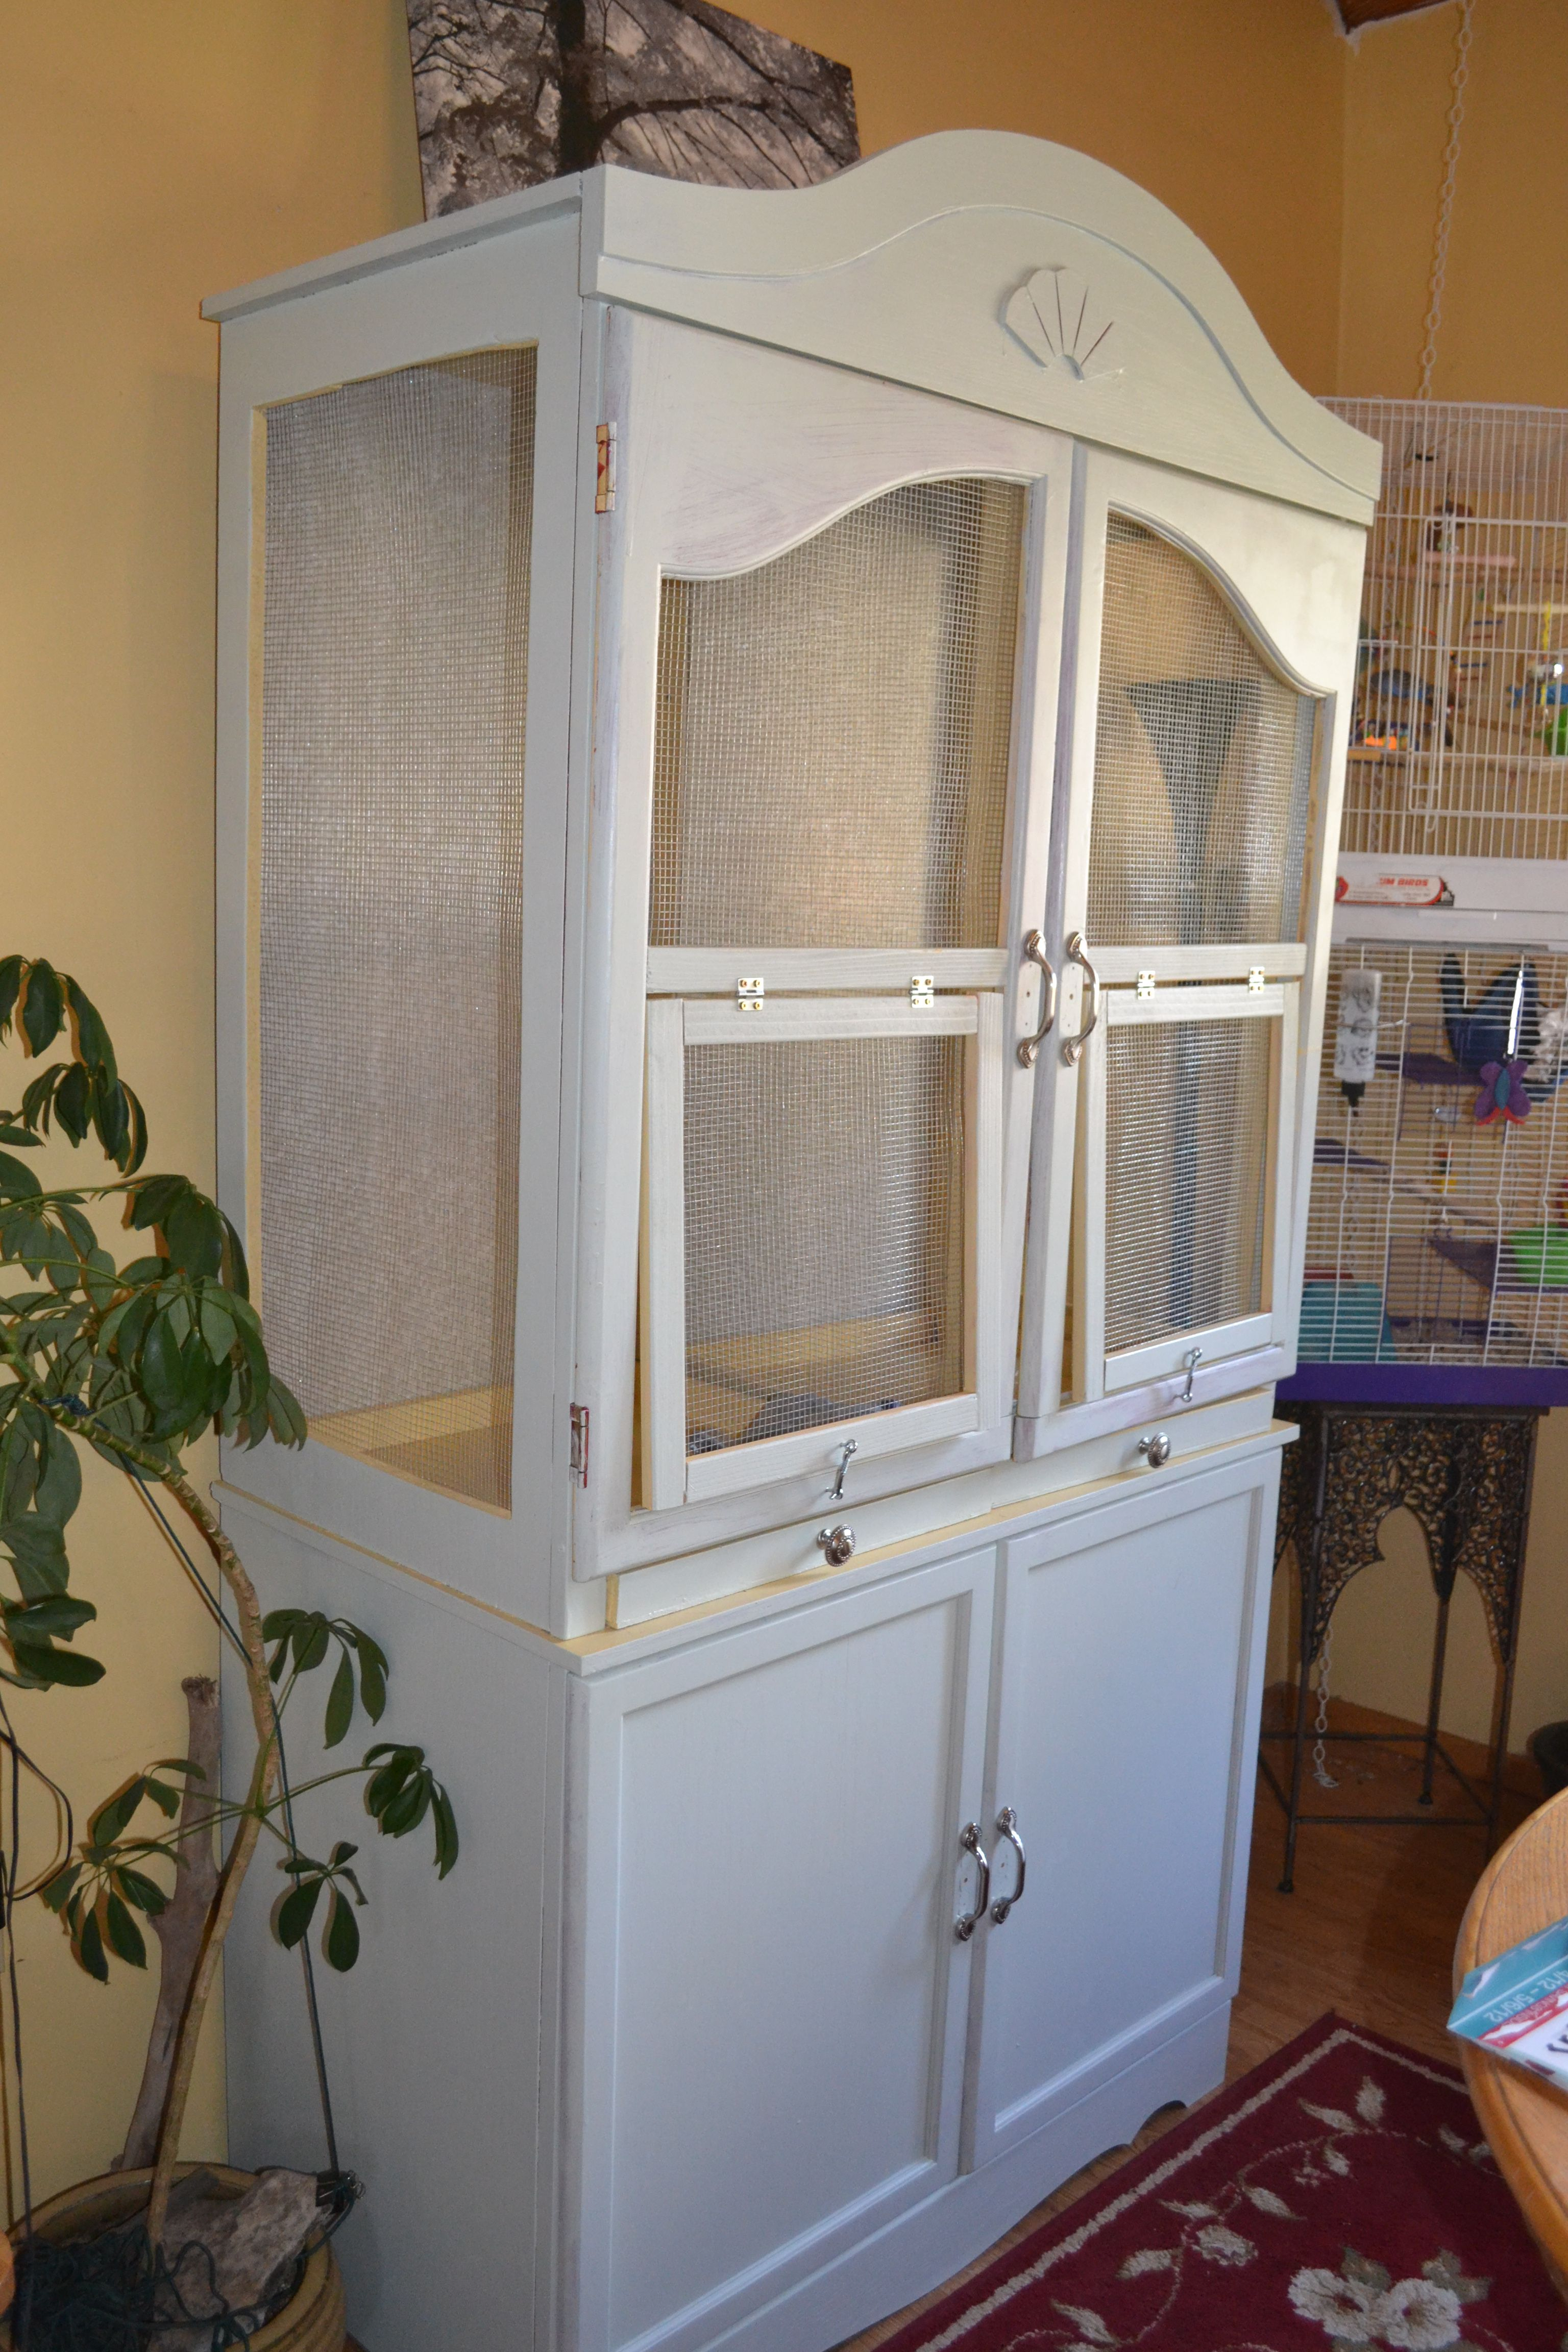 Aviary in the apartment for a dog with their own hands. Keeping dogs at home 48